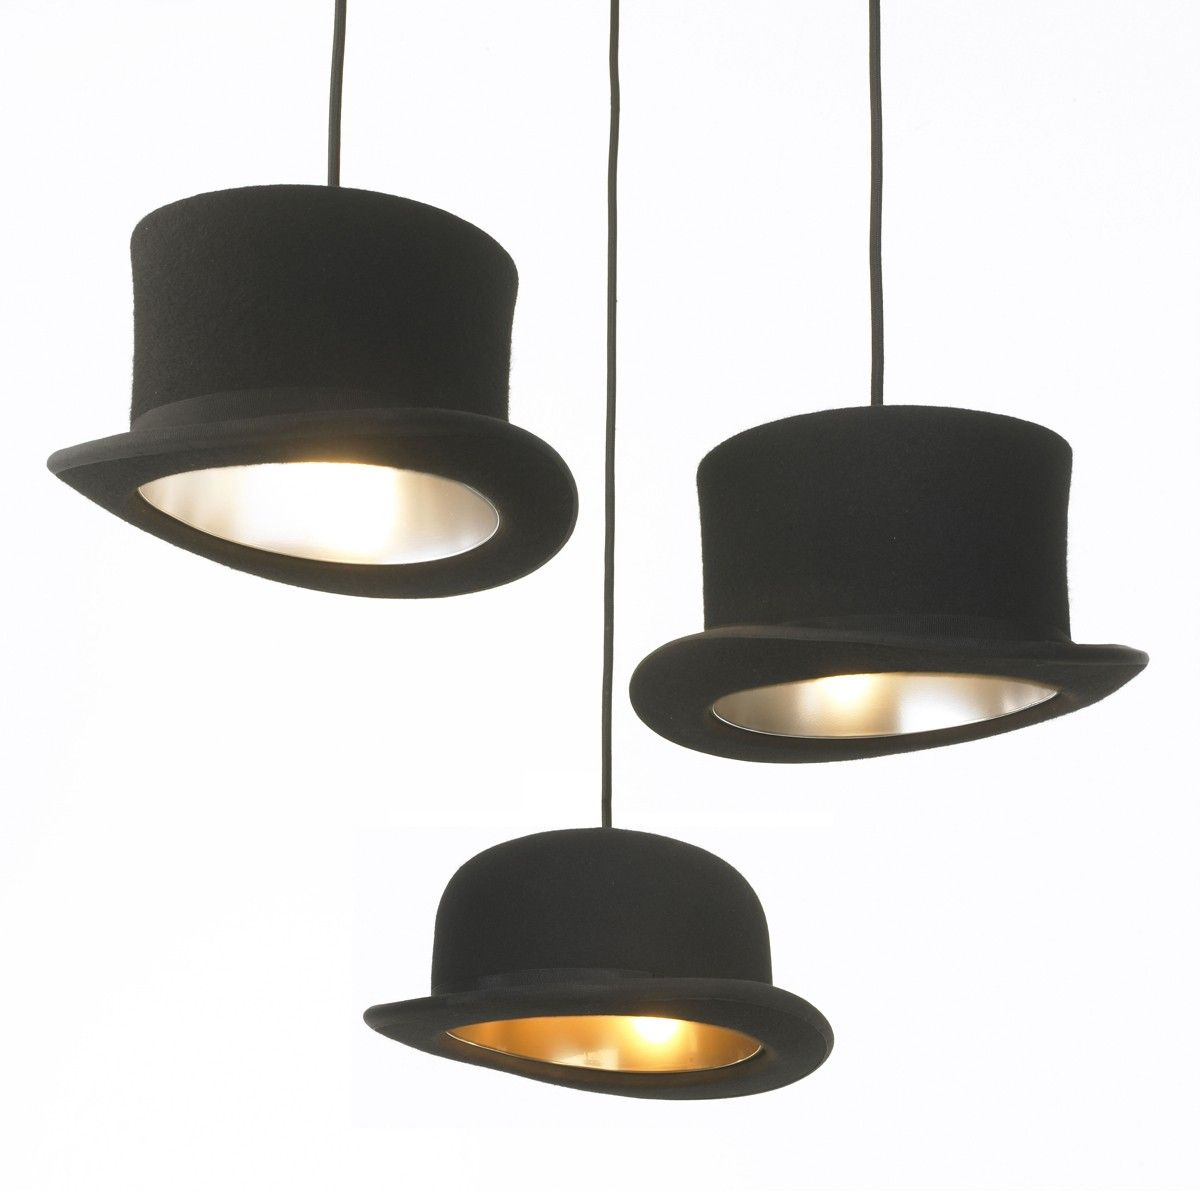 Top Hat Lights Could Be Fun For A Little Boy S Room